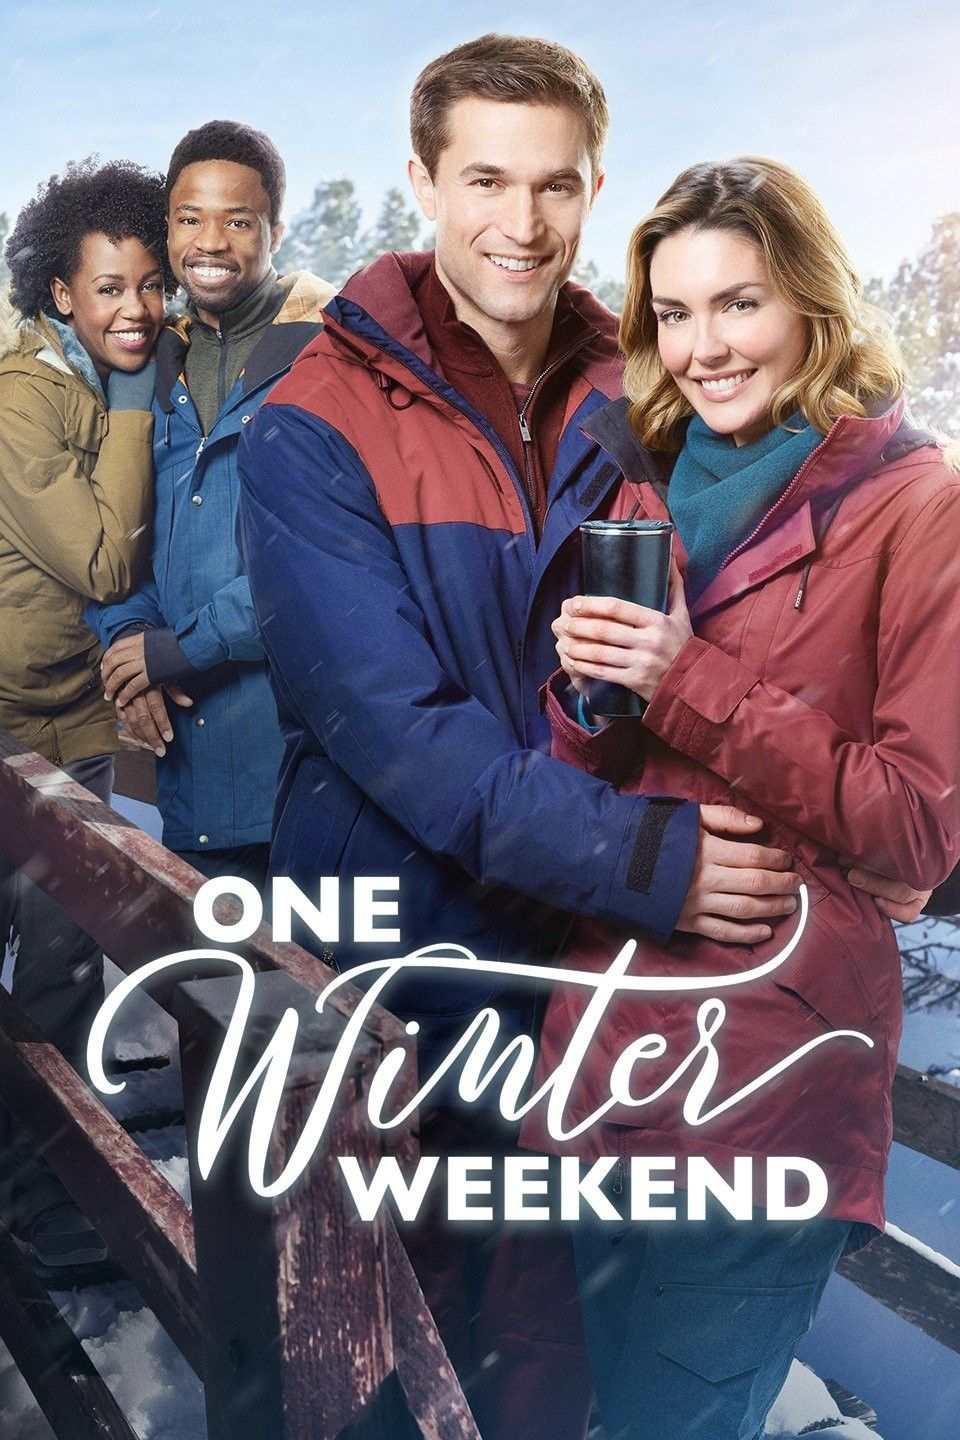 I like this movie. It involved two couples. The women meet